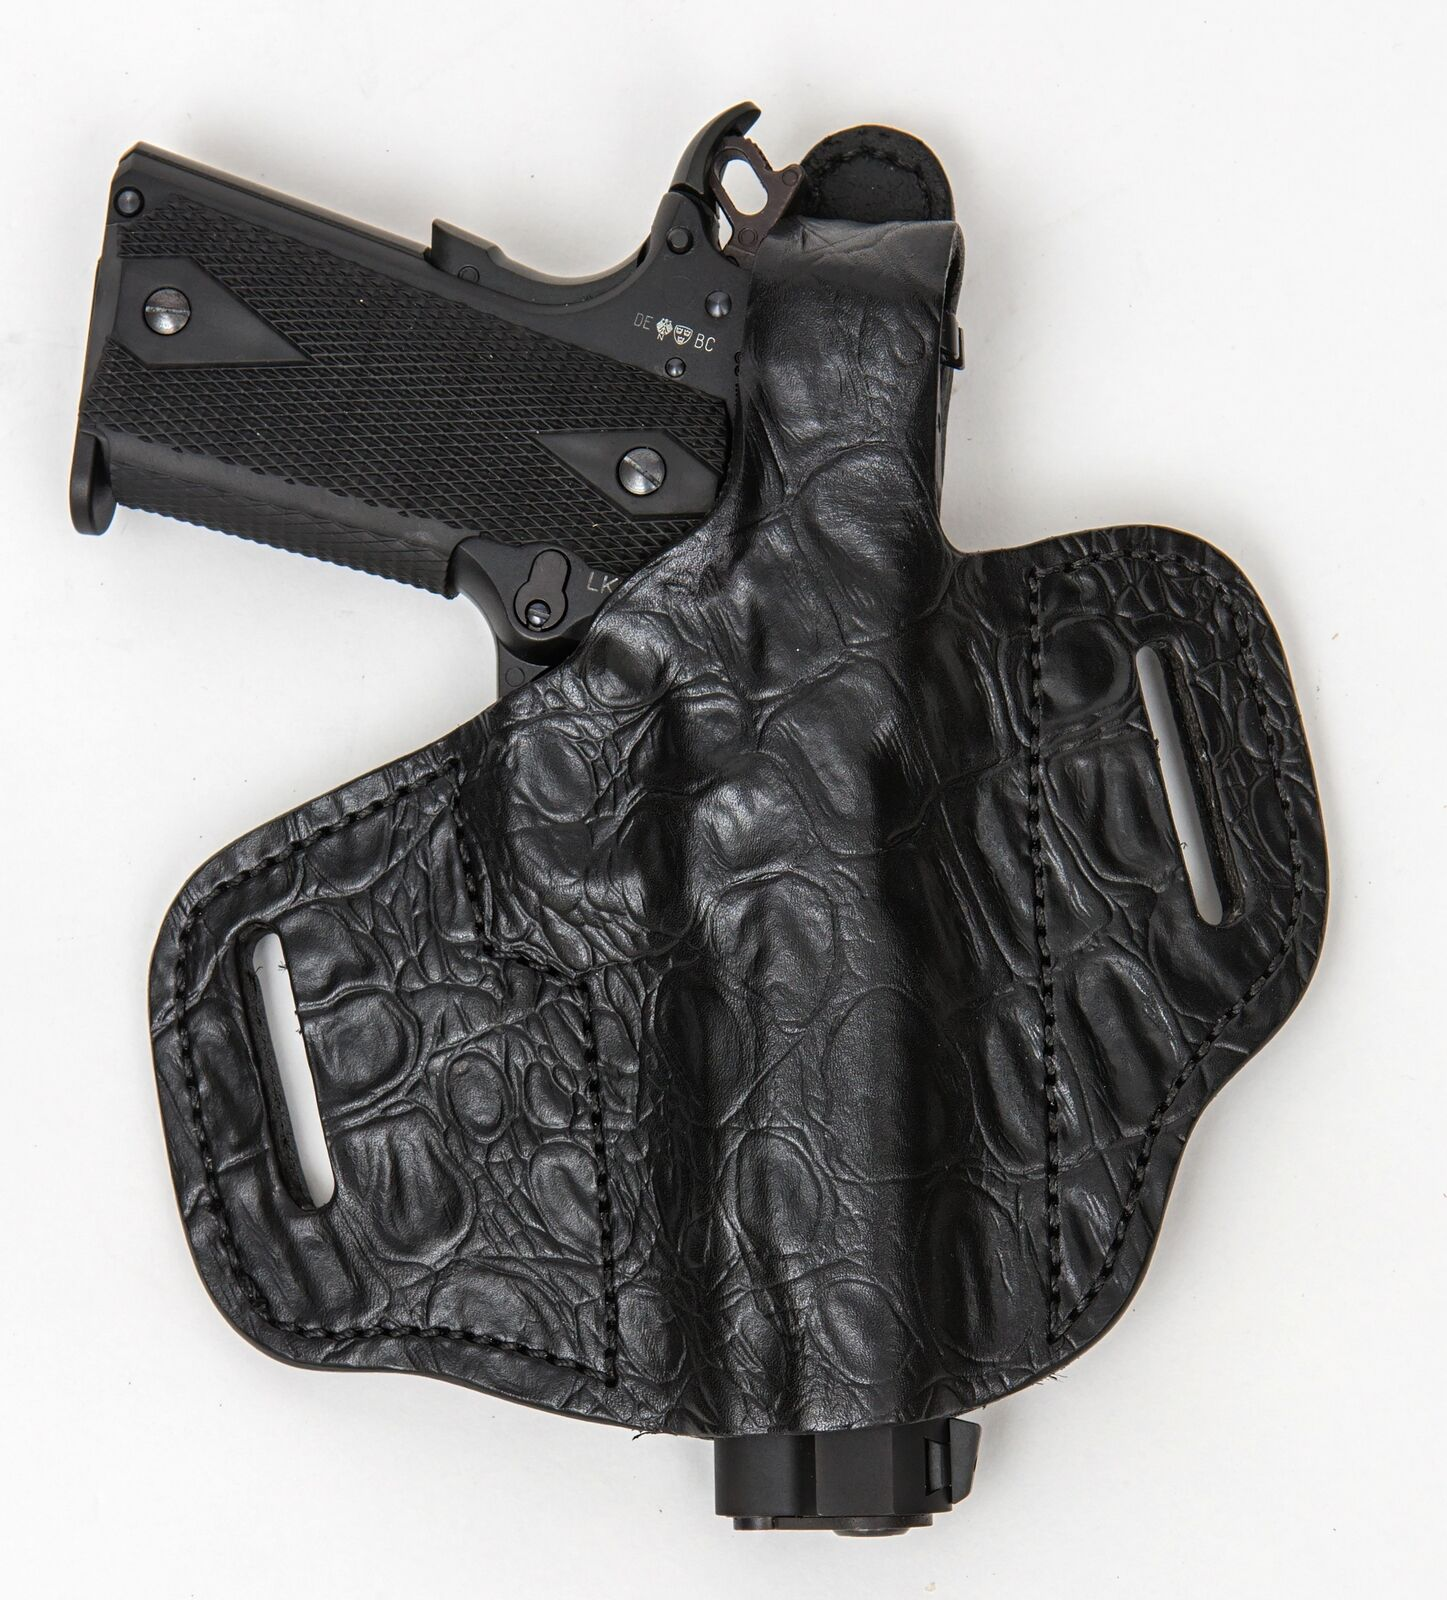 On Duty OWB Conceal RH LH OWB Duty Leder Gun Holster For Remington R51 w/ CT Laserguard 8506c7